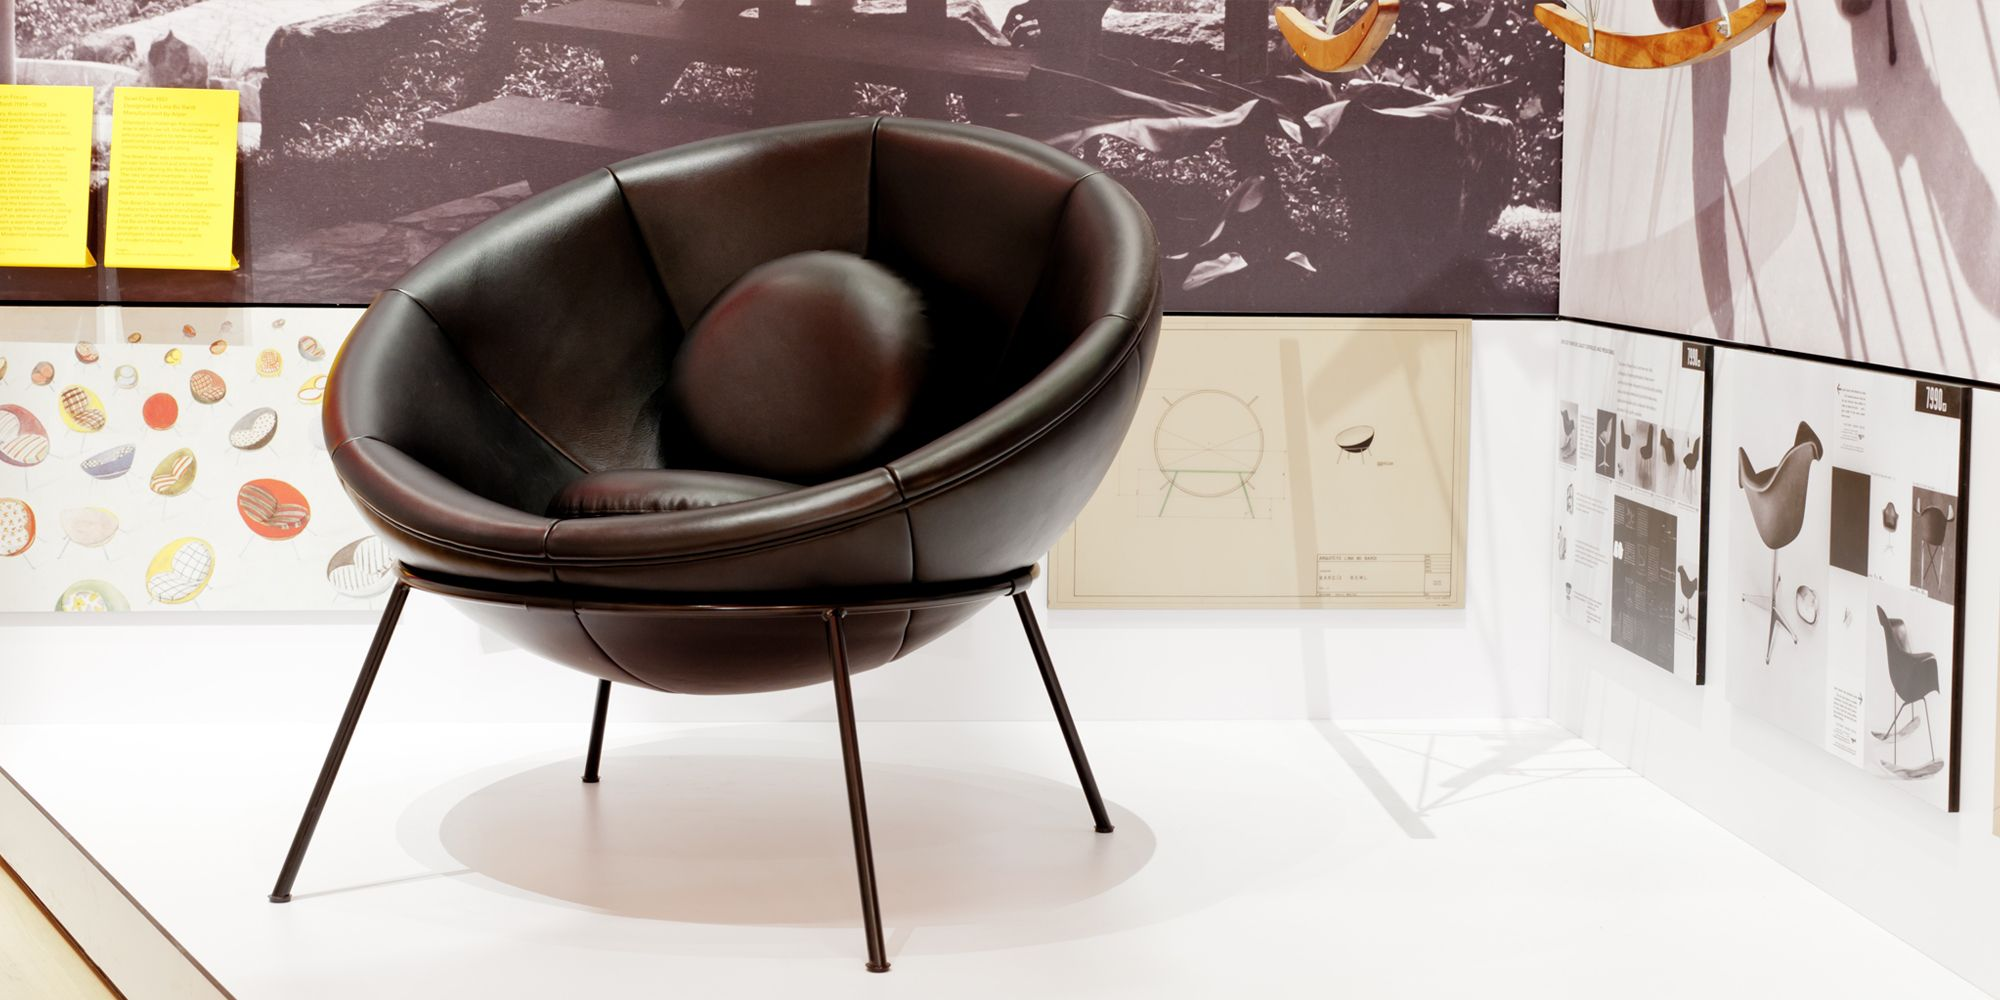 Arper s Bardi s Bowl Chair has entered the permanent collection of